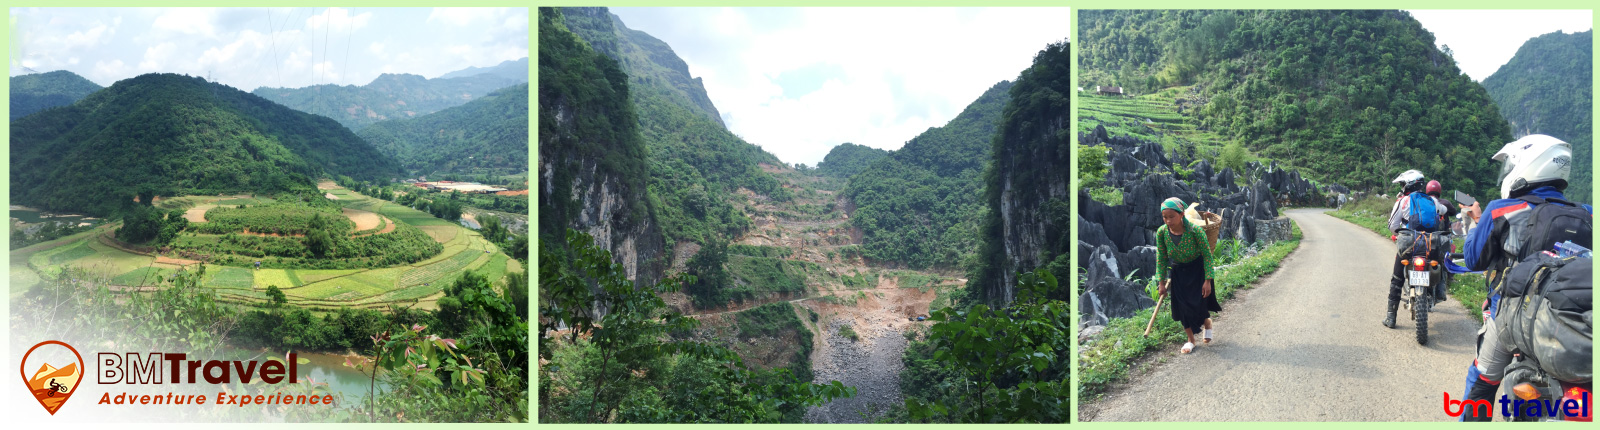 Vietnam motorbike tours via northern loop trail 10 days, day 6